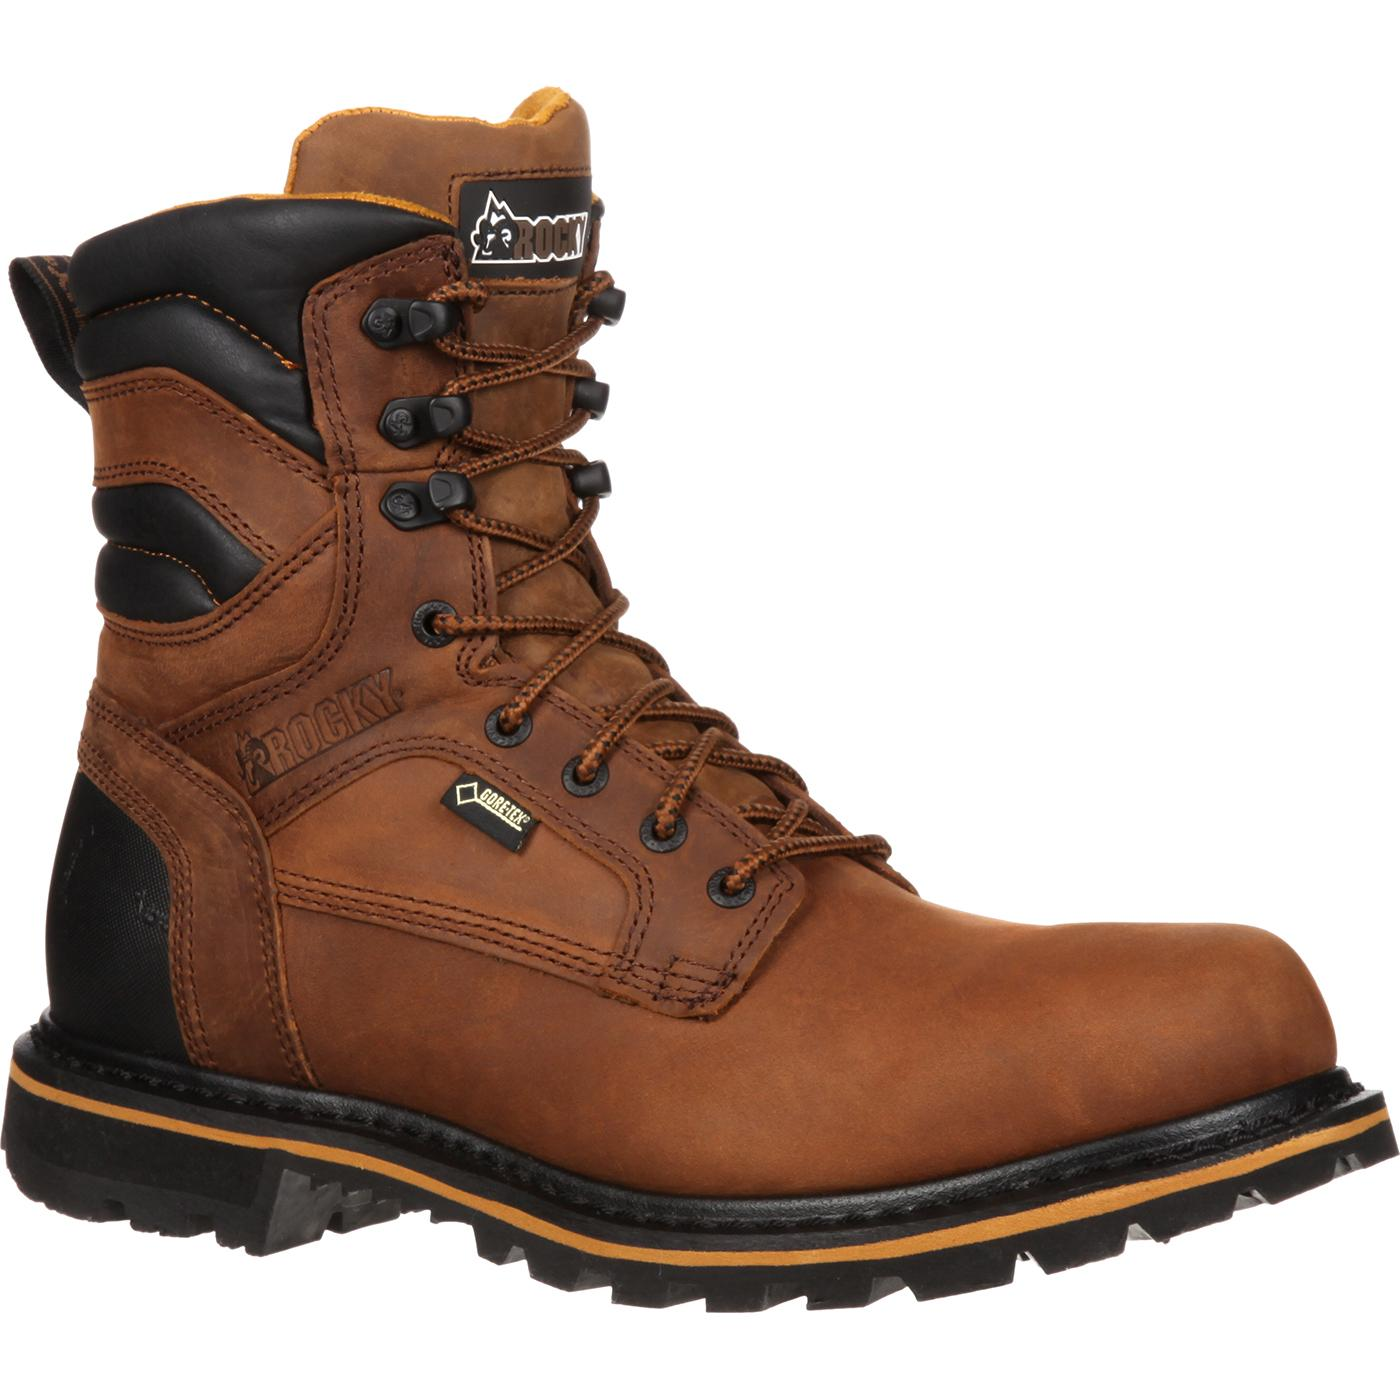 Rocky Governor GORE-TEX Composite Toe Work Boot, #RKYK004